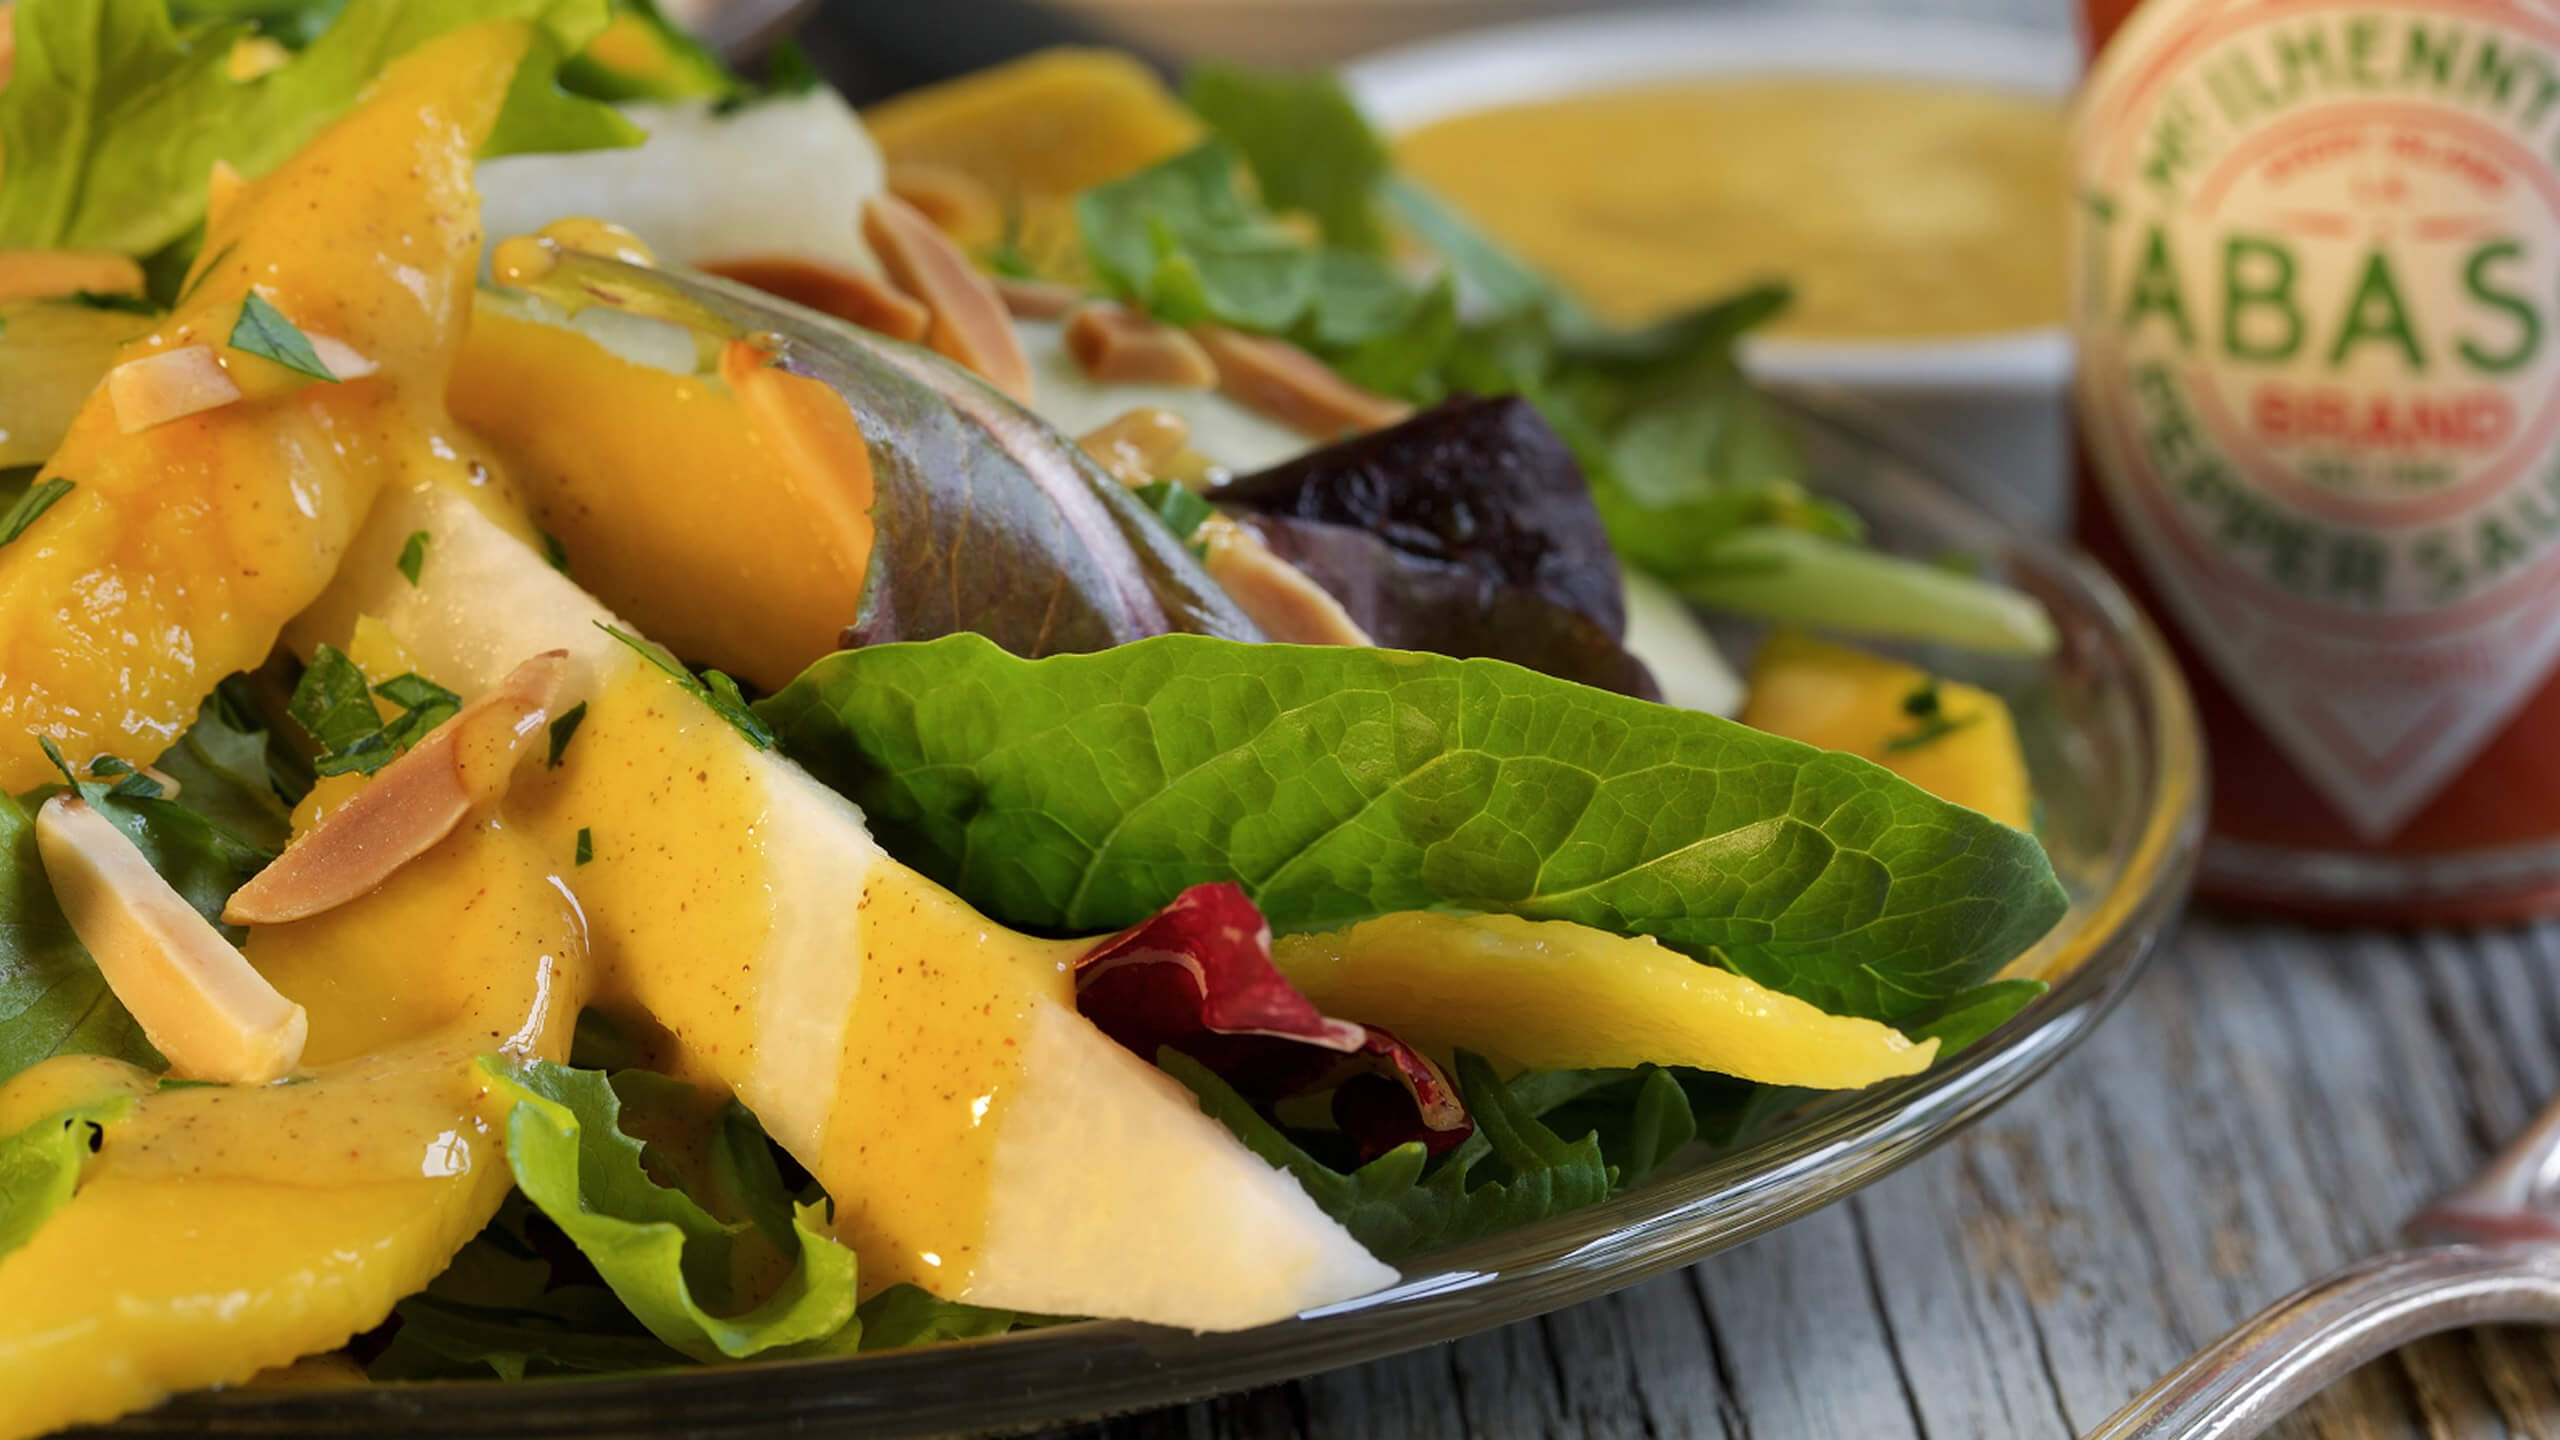 Jicama & Cucumber Green Salad with Mango Vinaigrette